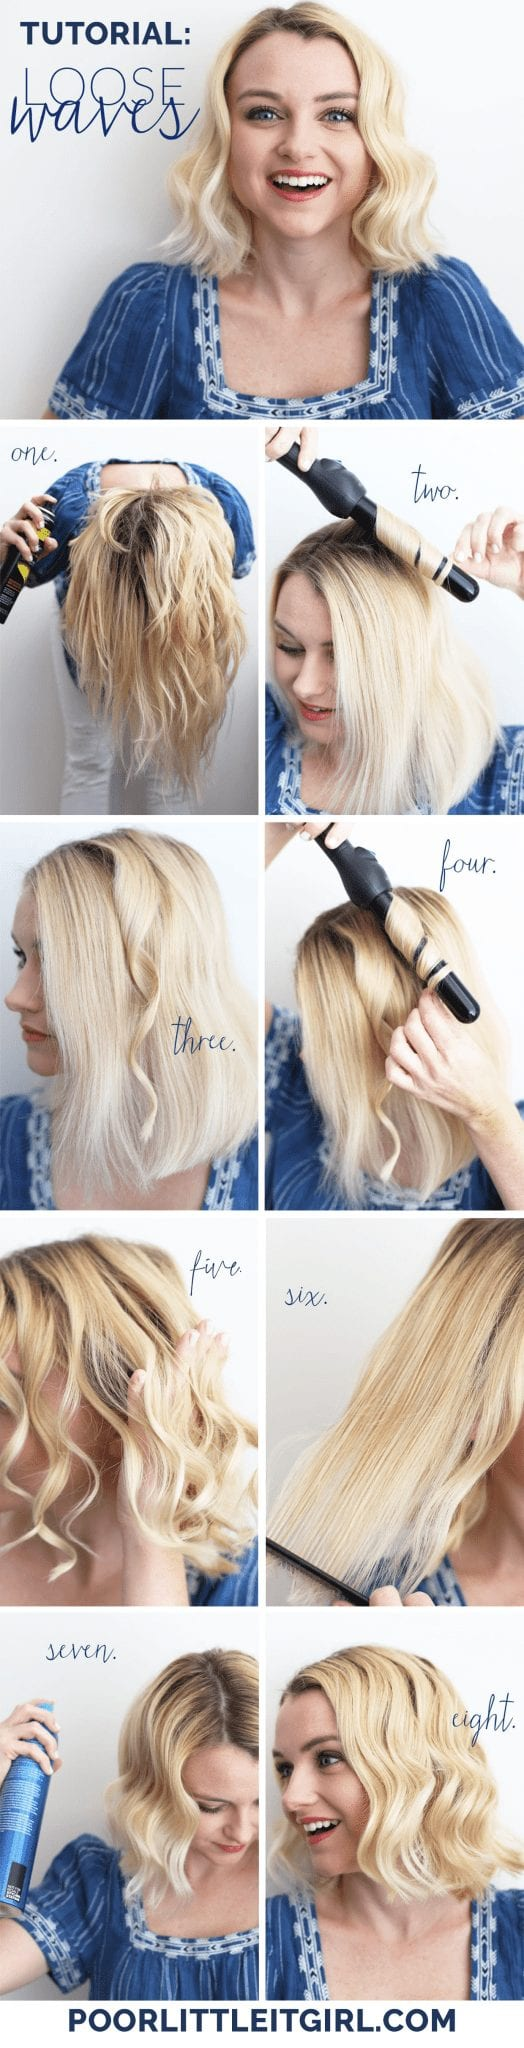 How To Create Loose Waves On Short Hair Poor Little It Girl